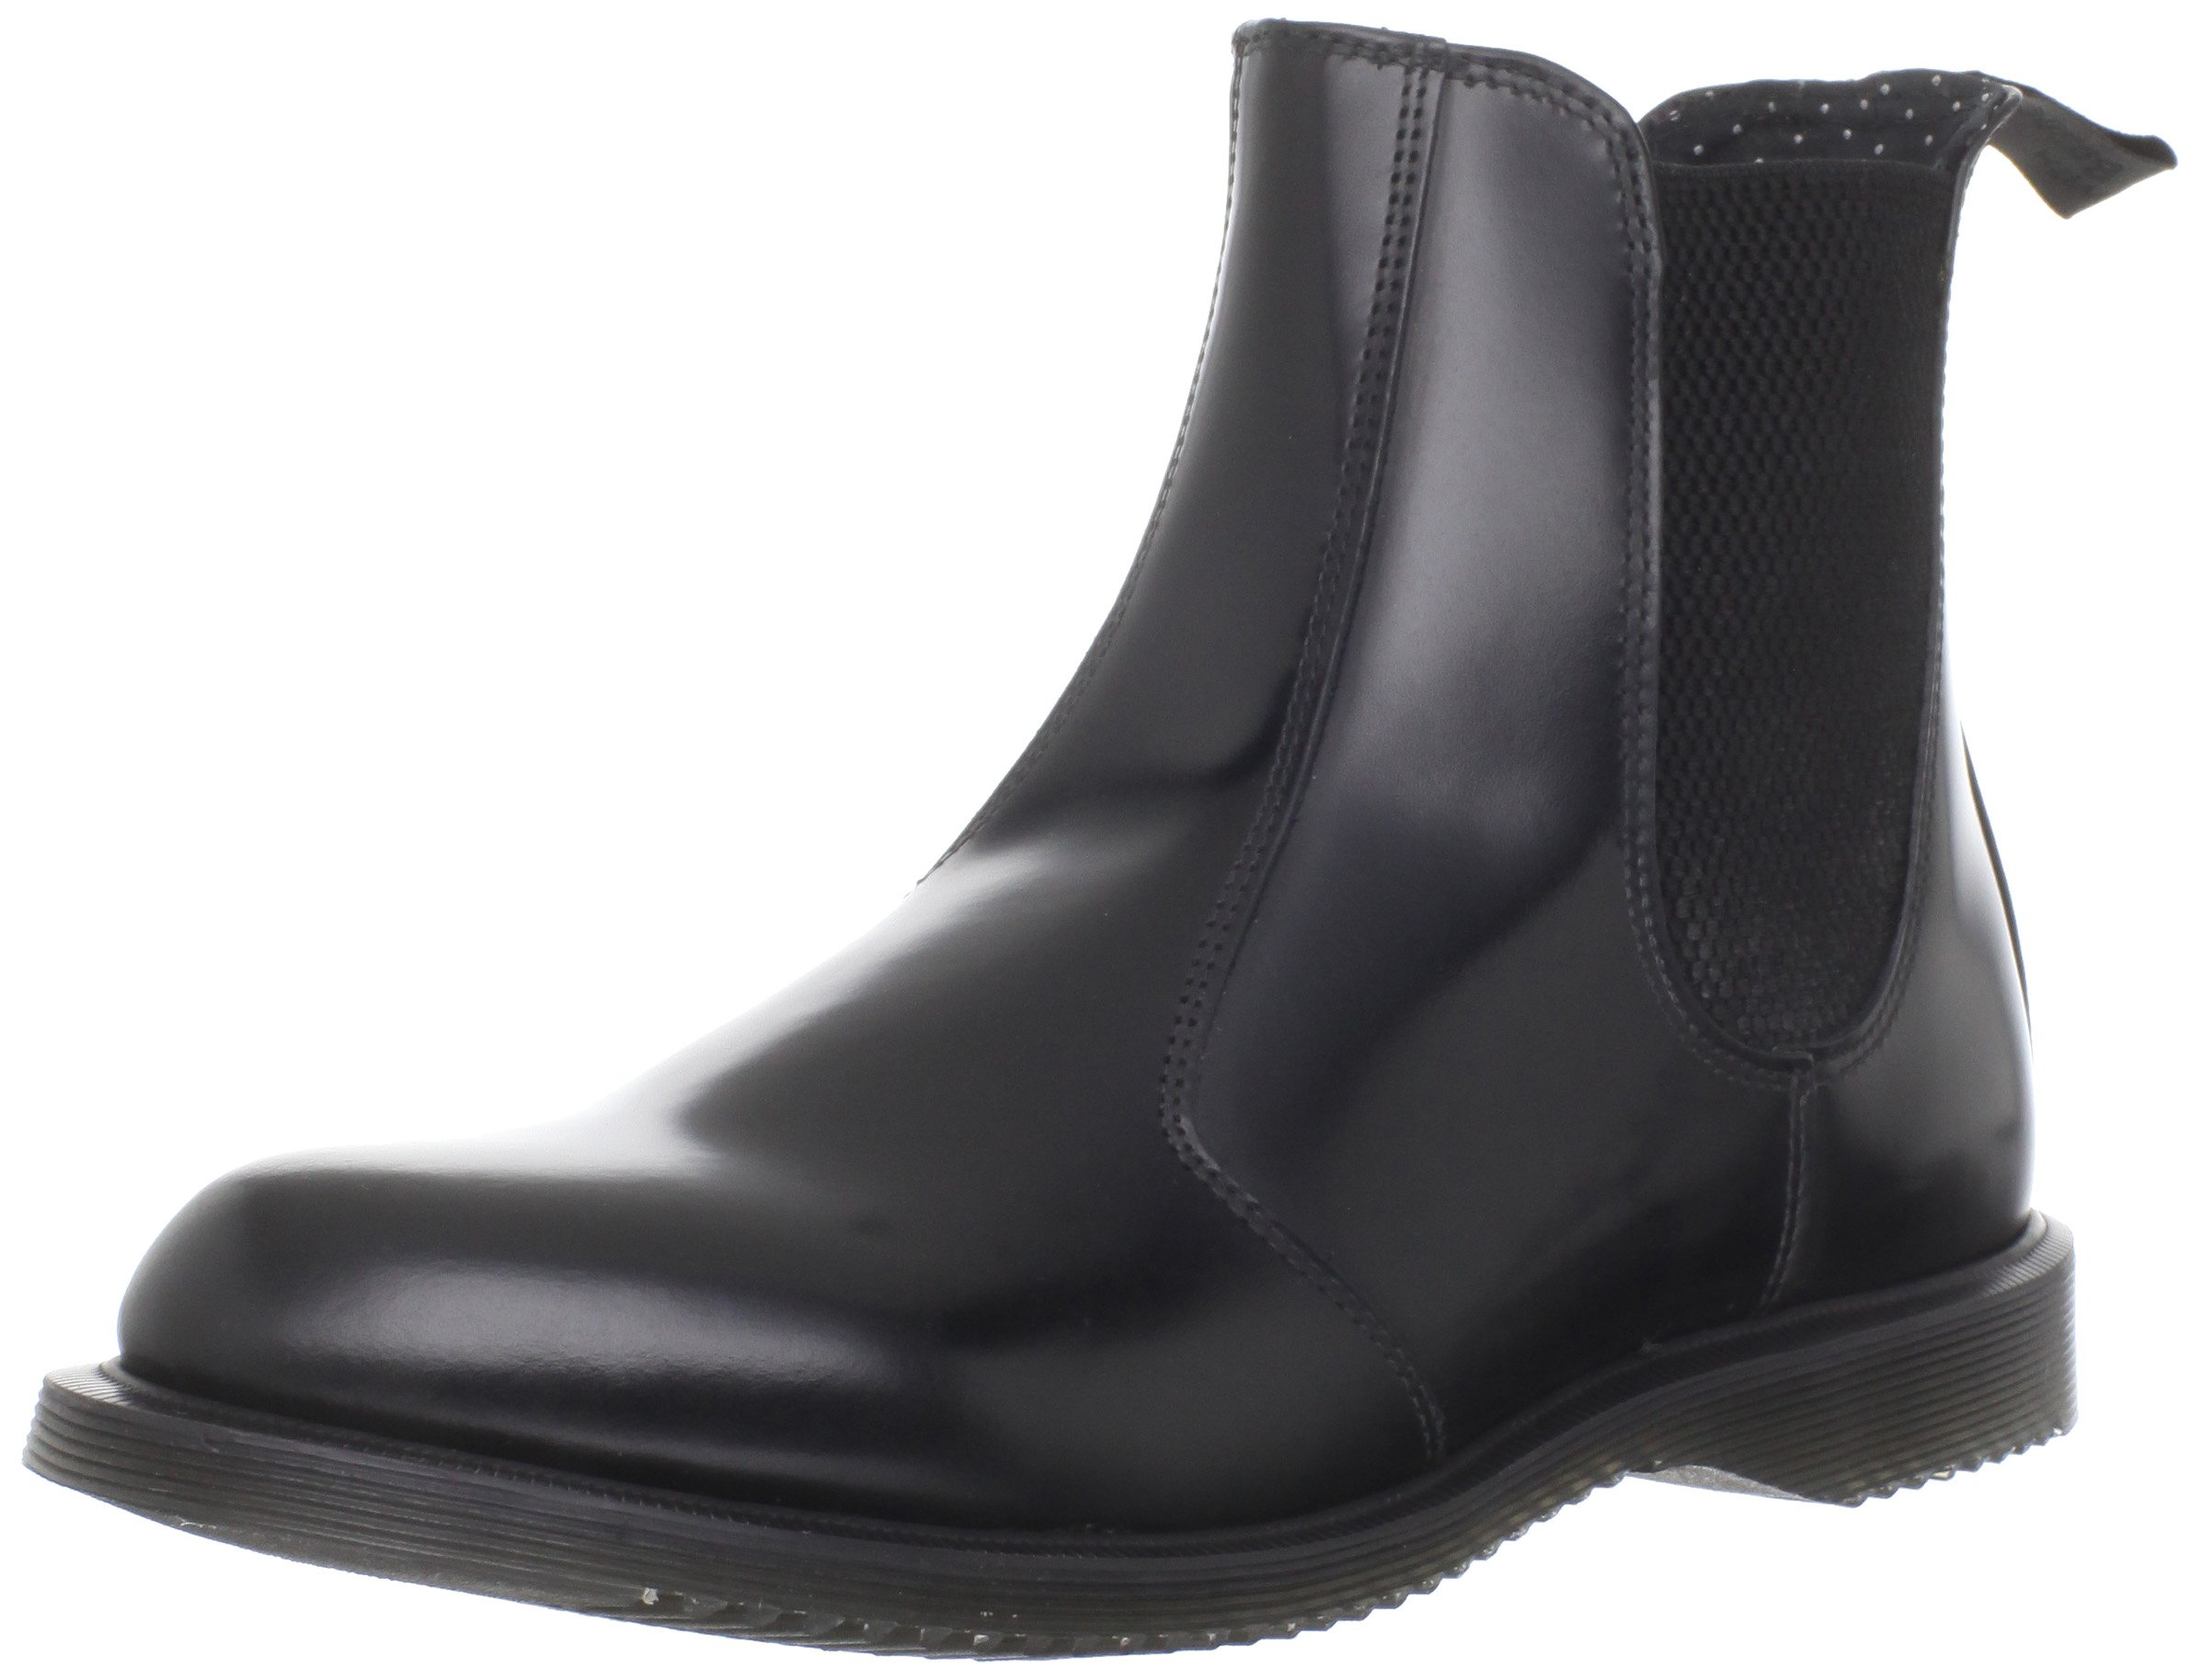 Dr. Martens Women's Vegan Flora Chelsea Boot, Black, 6 UK/8 B US